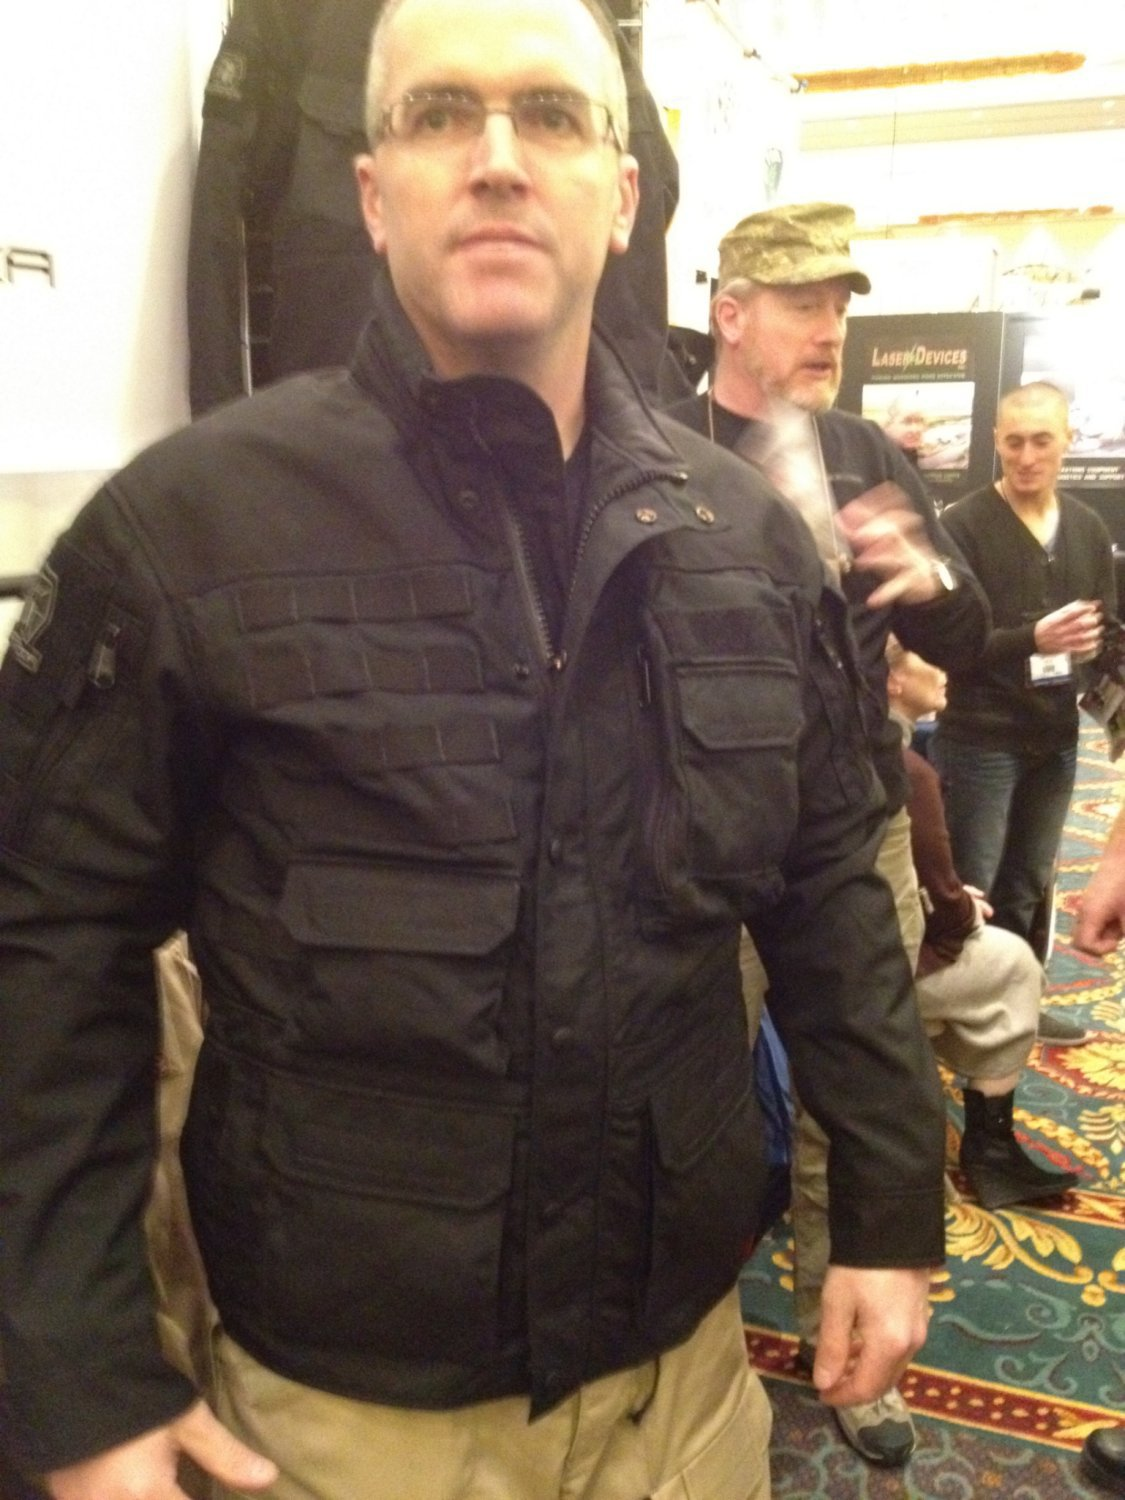 Kitanica Mark V (MK5) Tactical Jacket with Textured Poron XRD Padding System for Civilian Tactical Shooters: The Latest Kitanica Advanced Tactical Apparel/Clothing Product (Video!)